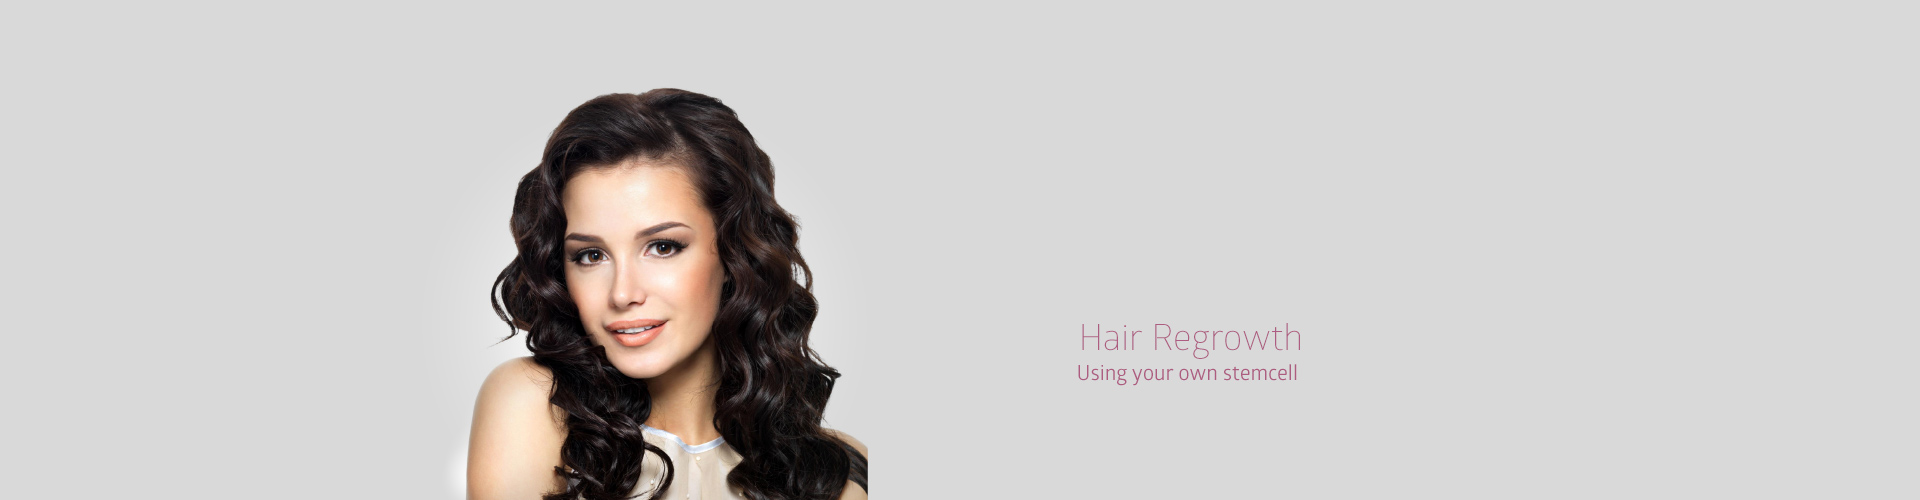 Hair-Regrowth-Using-your-own-stemcell2